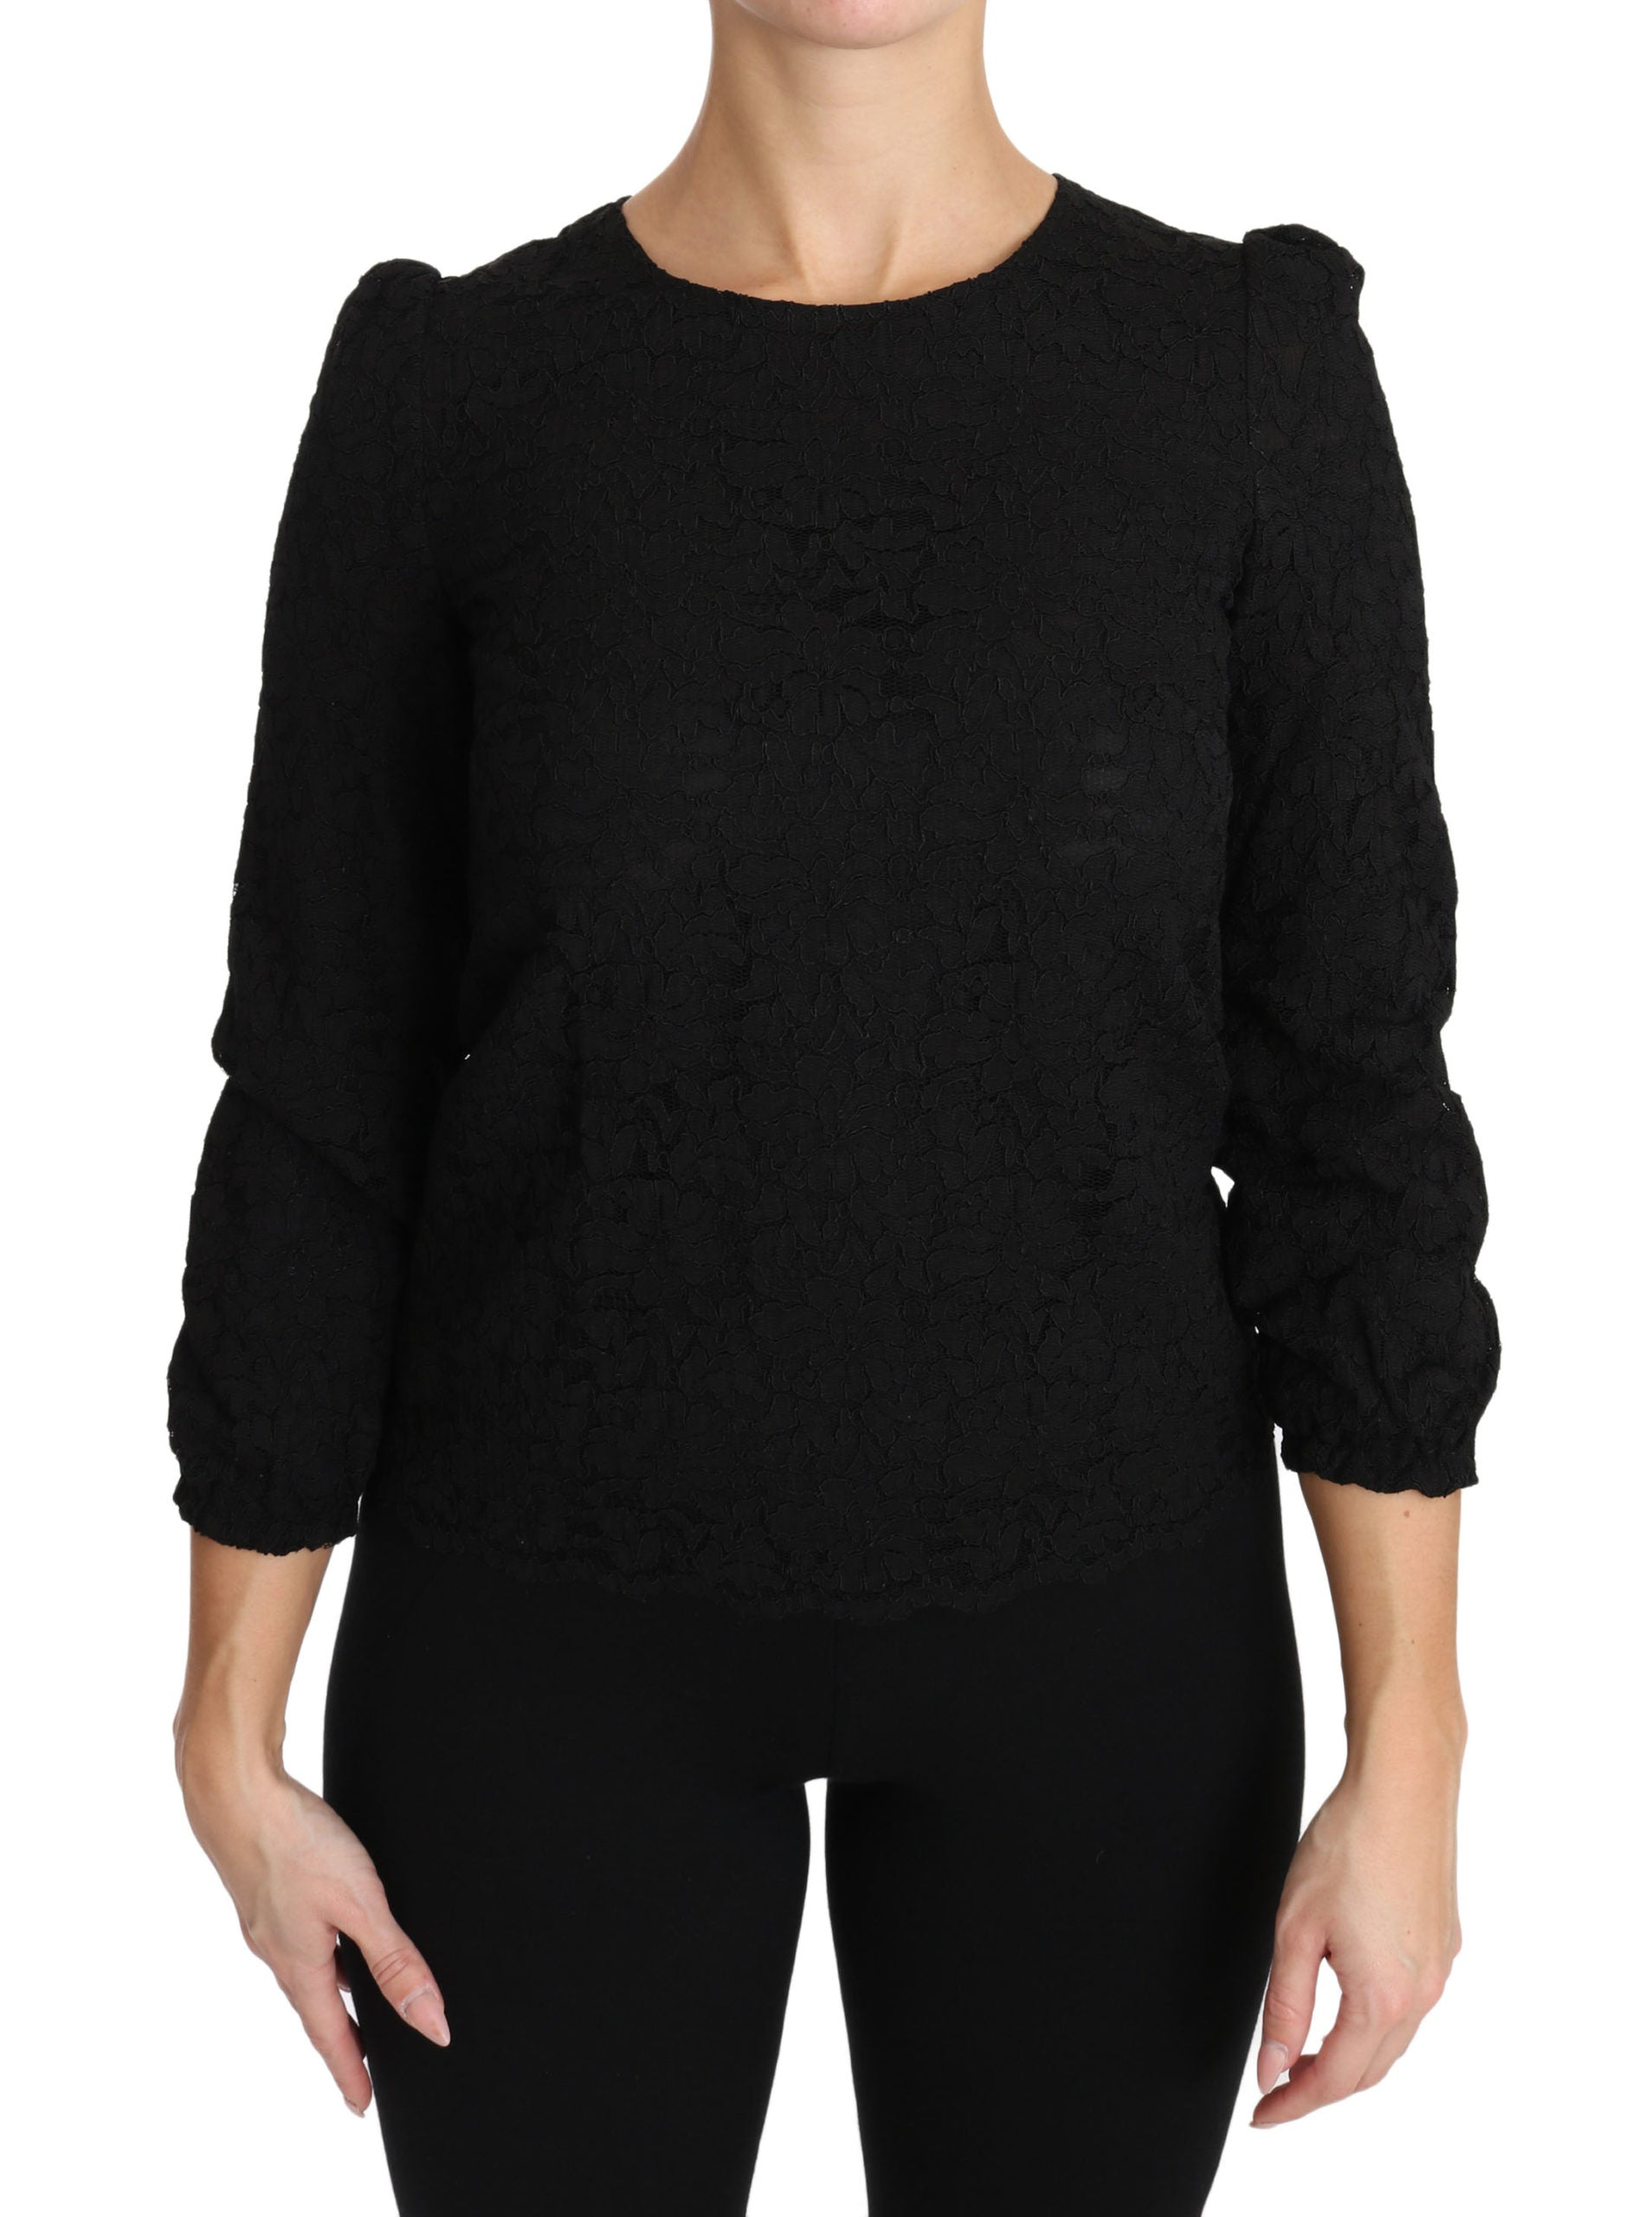 Image of Dolce & Gabbana Black Floral Lace Zipper Top Blouse